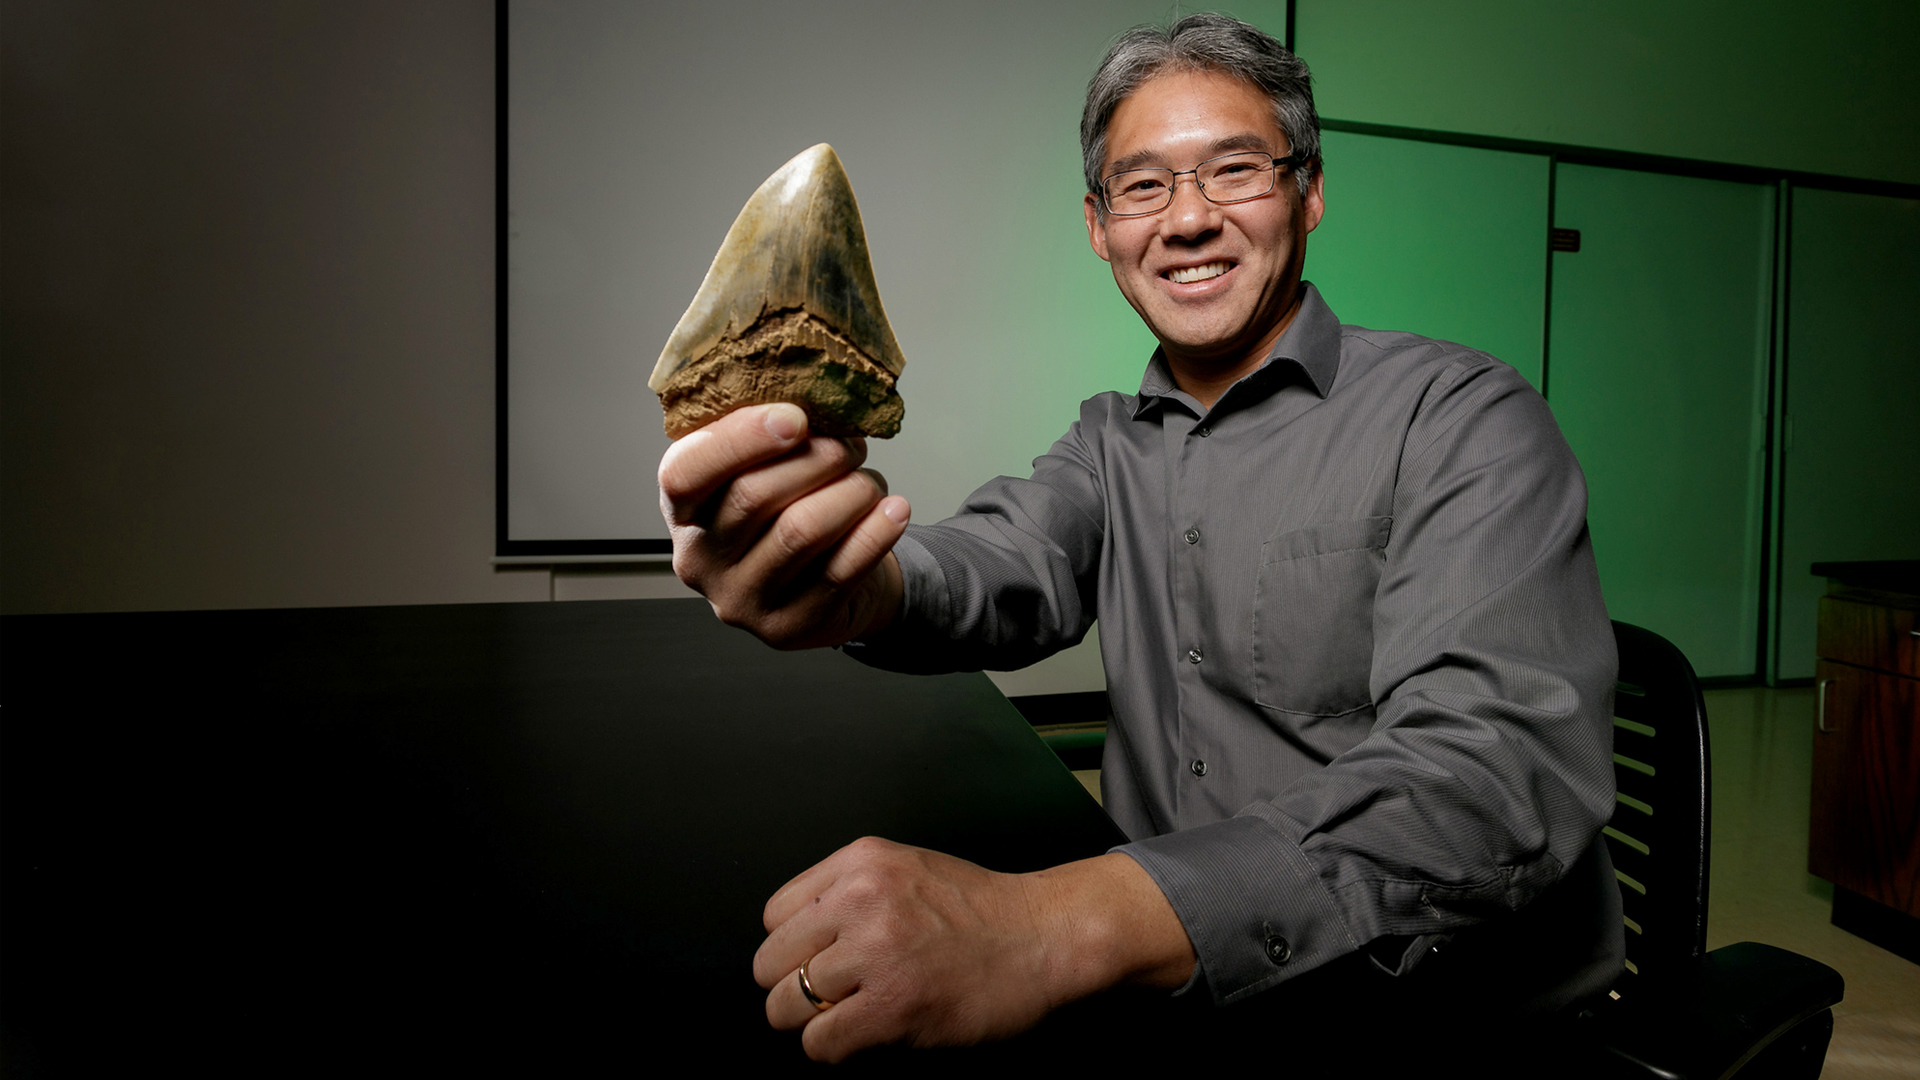 Jurassic Shark: Megalodon Shark Gave Birth To Giant Newborns That Ate Their Siblings